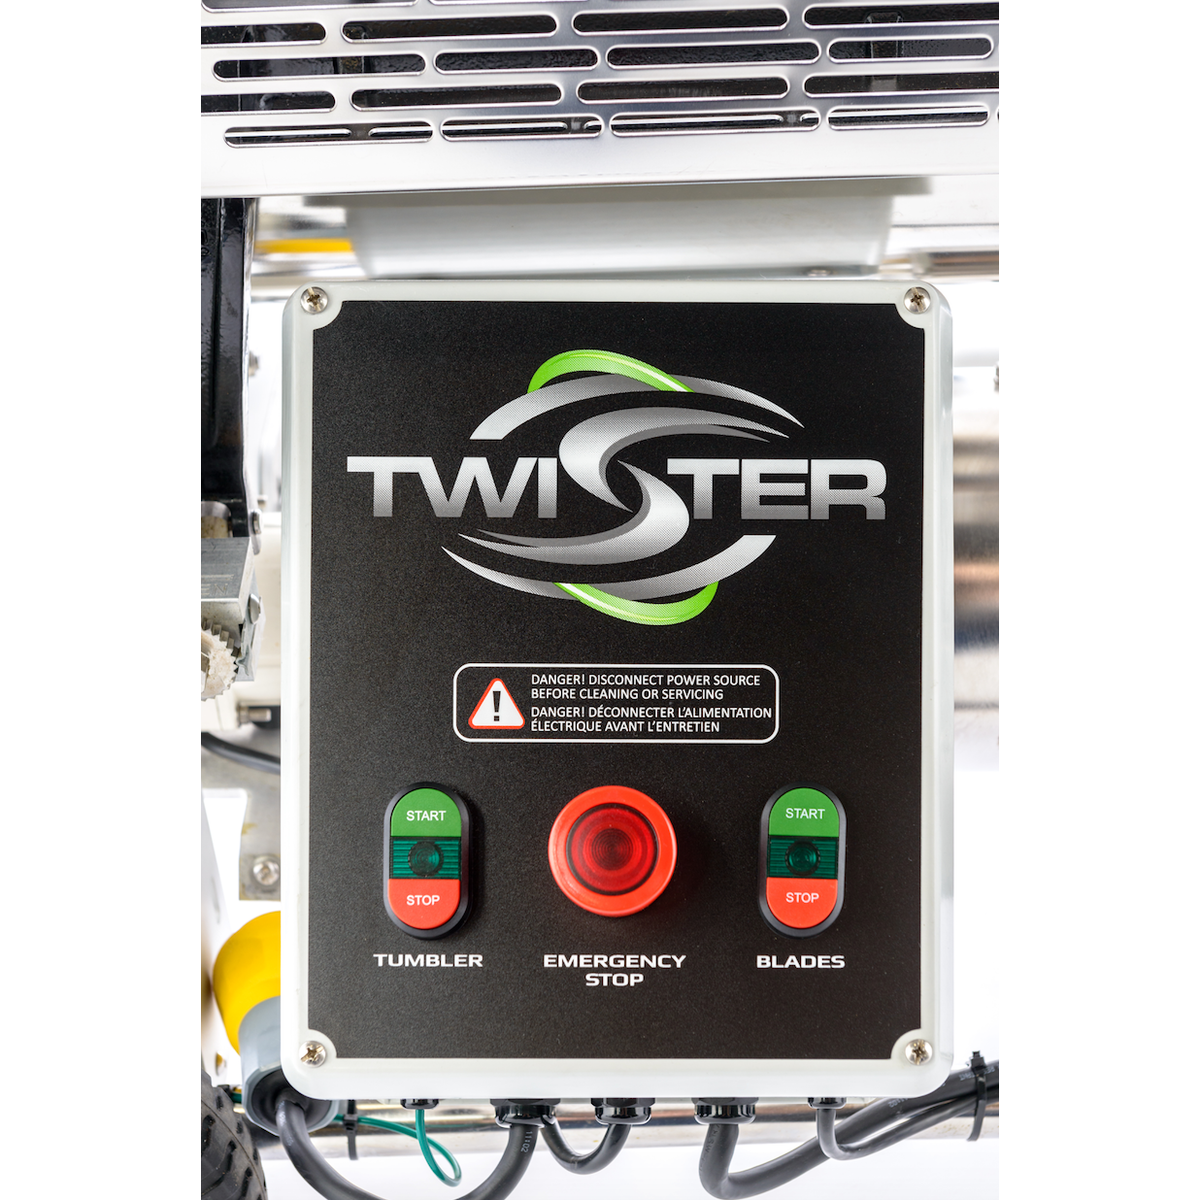 Twister T2 Ultimate Tandem Bud Trimmer & Trim Saver System